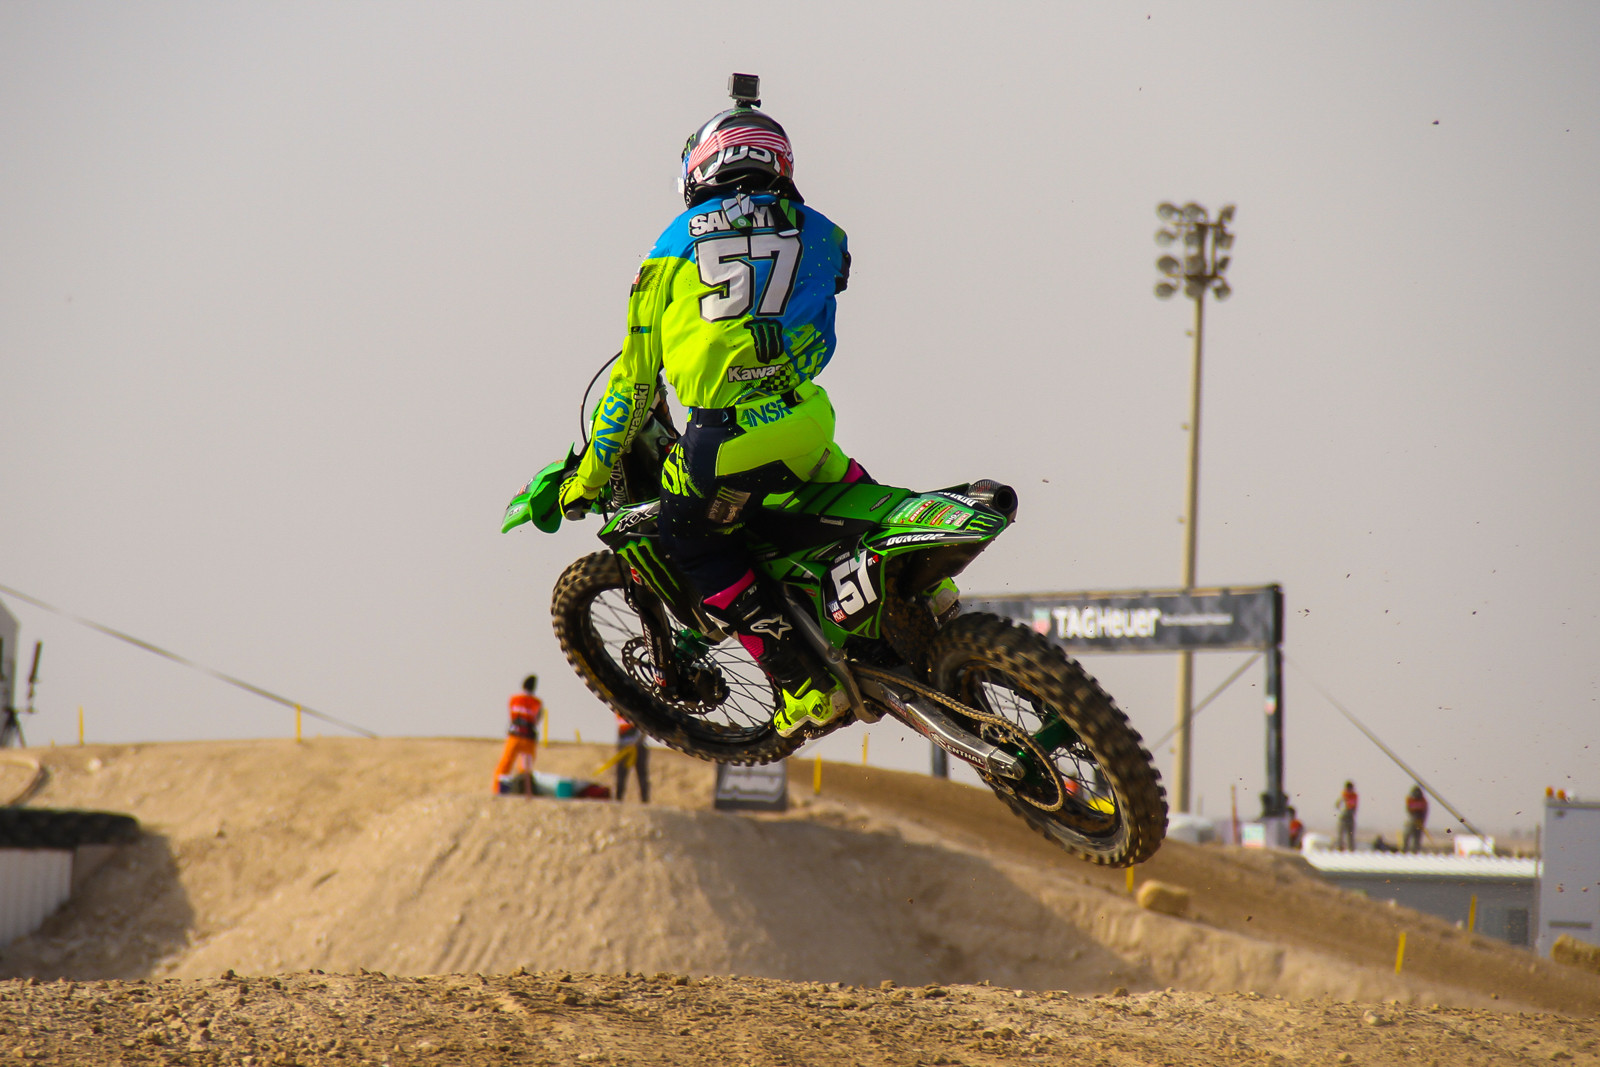 Darian Sanayei - Photo Blast: 2017 MXGP of Qatar - Motocross Pictures - Vital MX